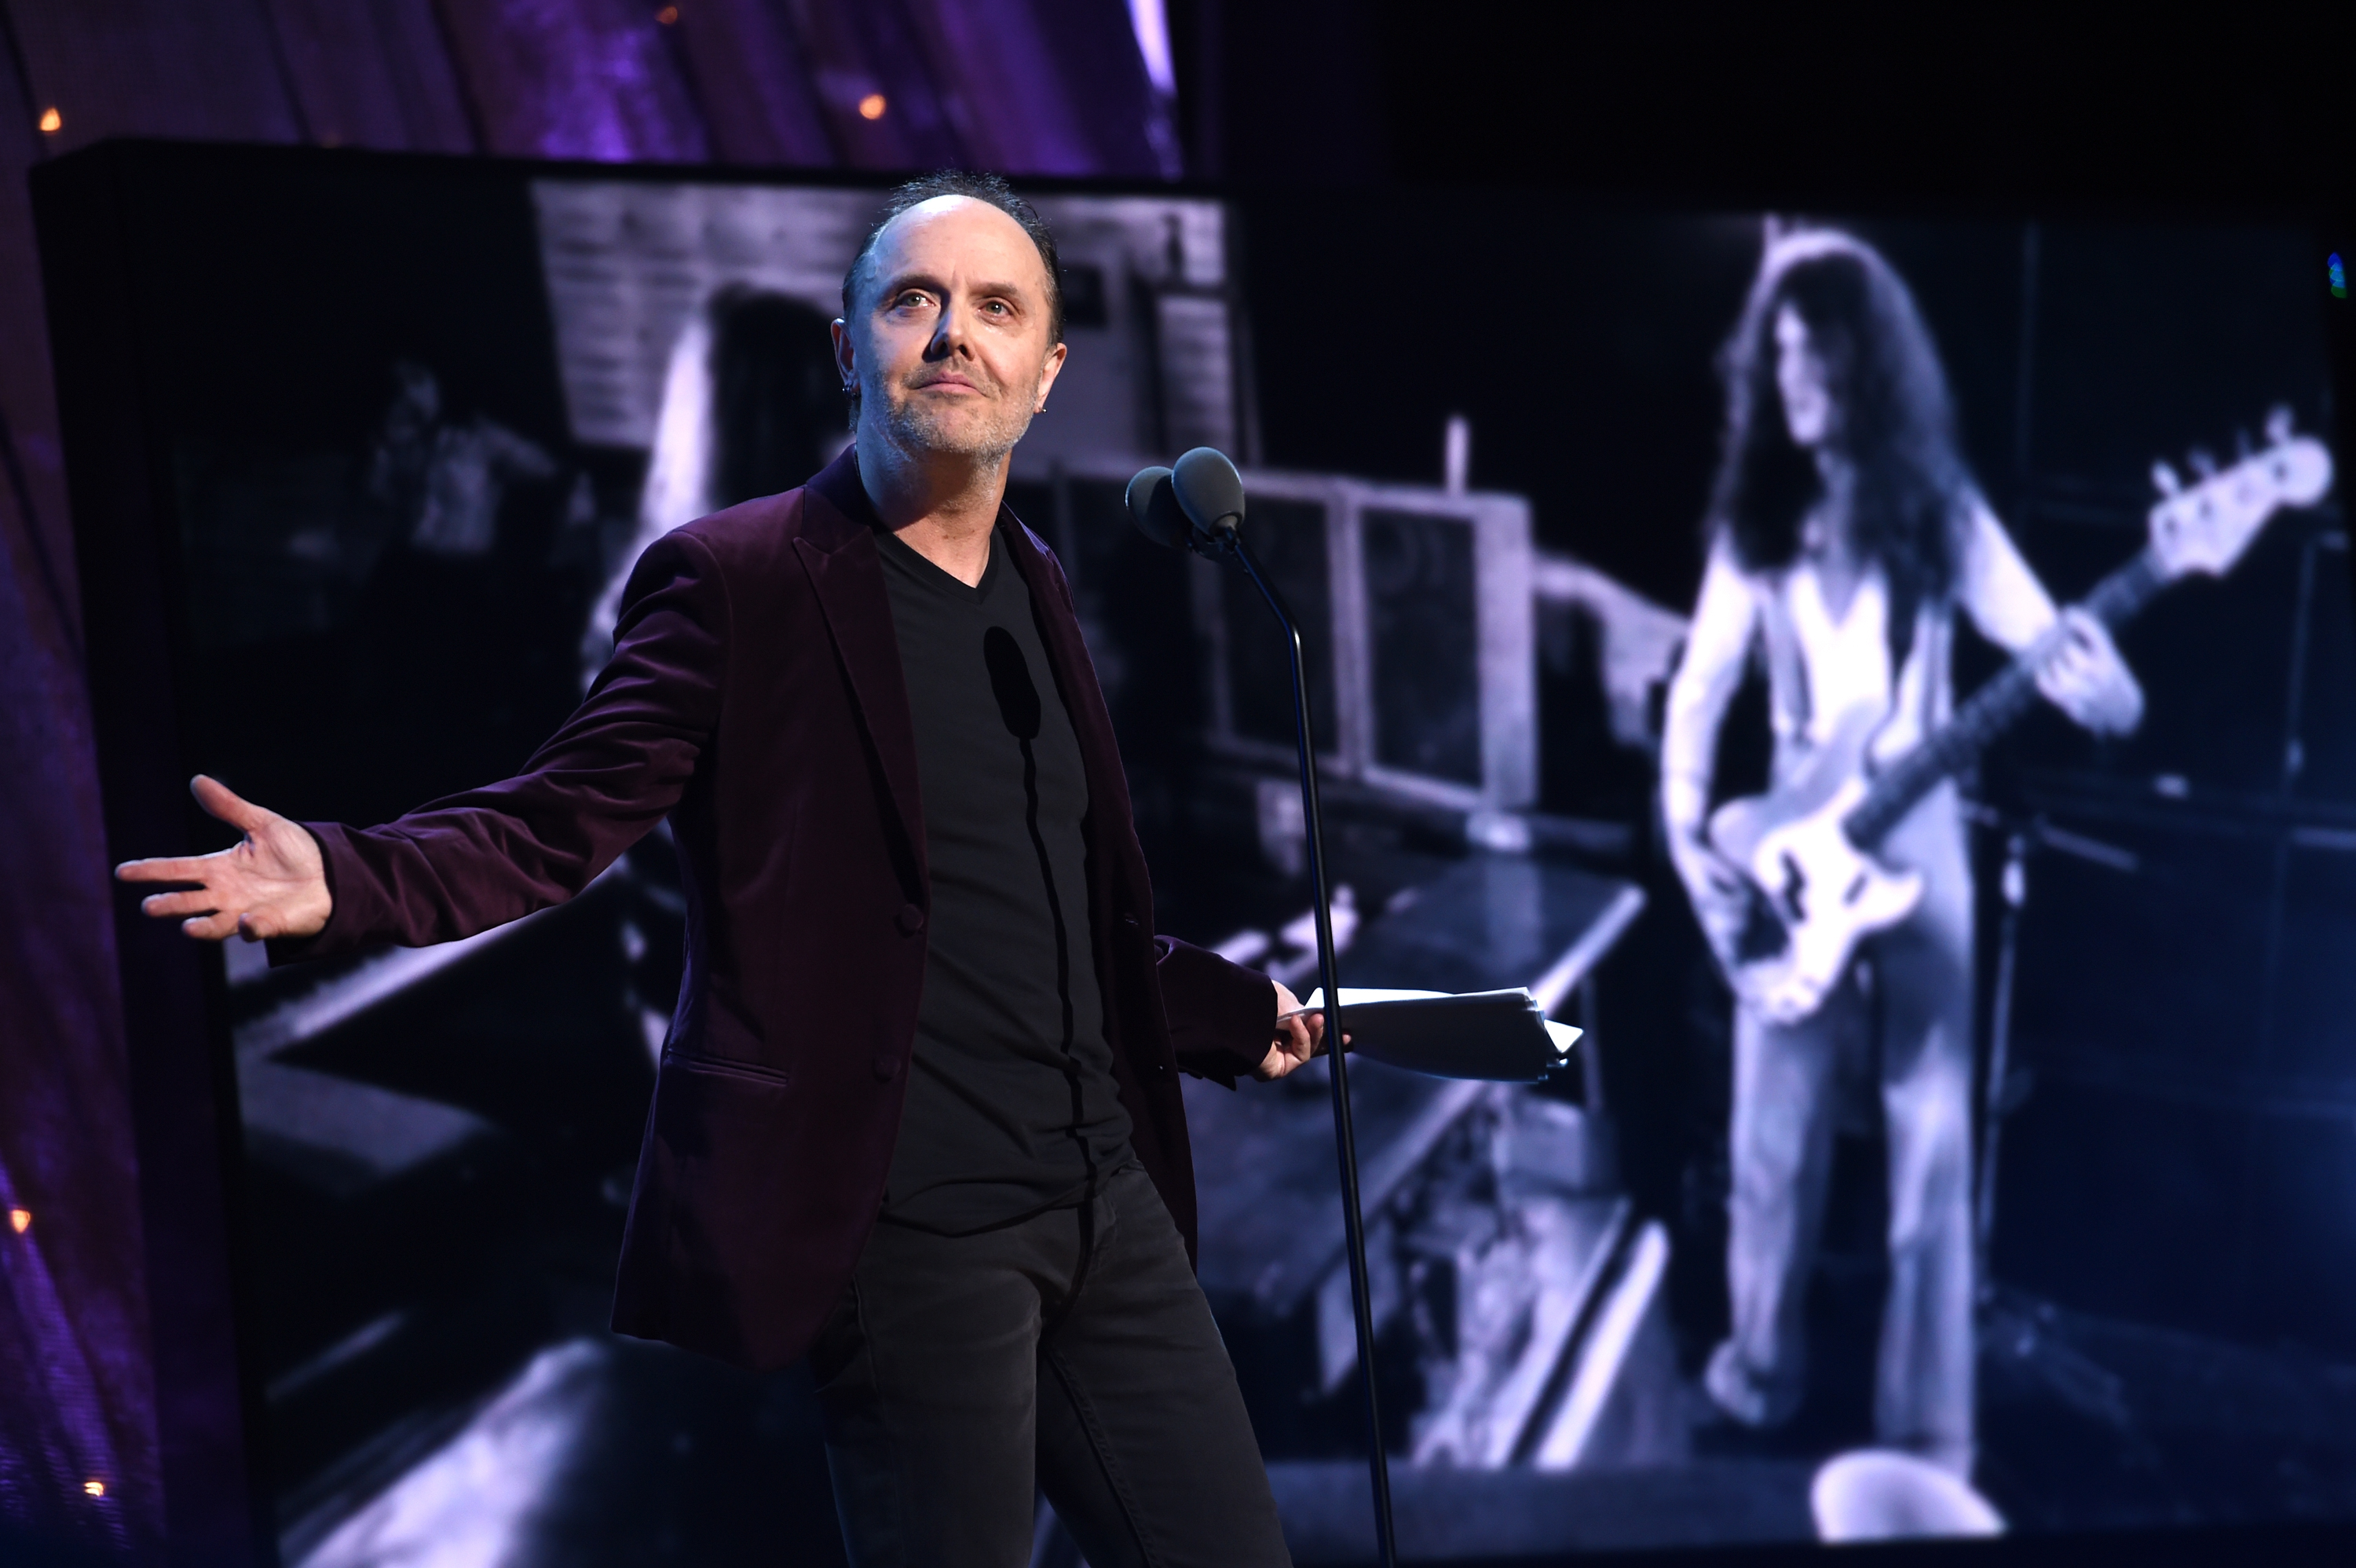 """NEW YORK, NEW YORK - APRIL 08: Lars Ulrich of Metallica inducts Deep Purple onstage at the 31st Annual Rock And Roll Hall Of Fame Induction Ceremony at Barclays Center of Brooklyn on April 8, 2016 in New York City. (Photo by Dimitrios Kambouris/WireImage for Rock and Roll Hall of Fame)"""